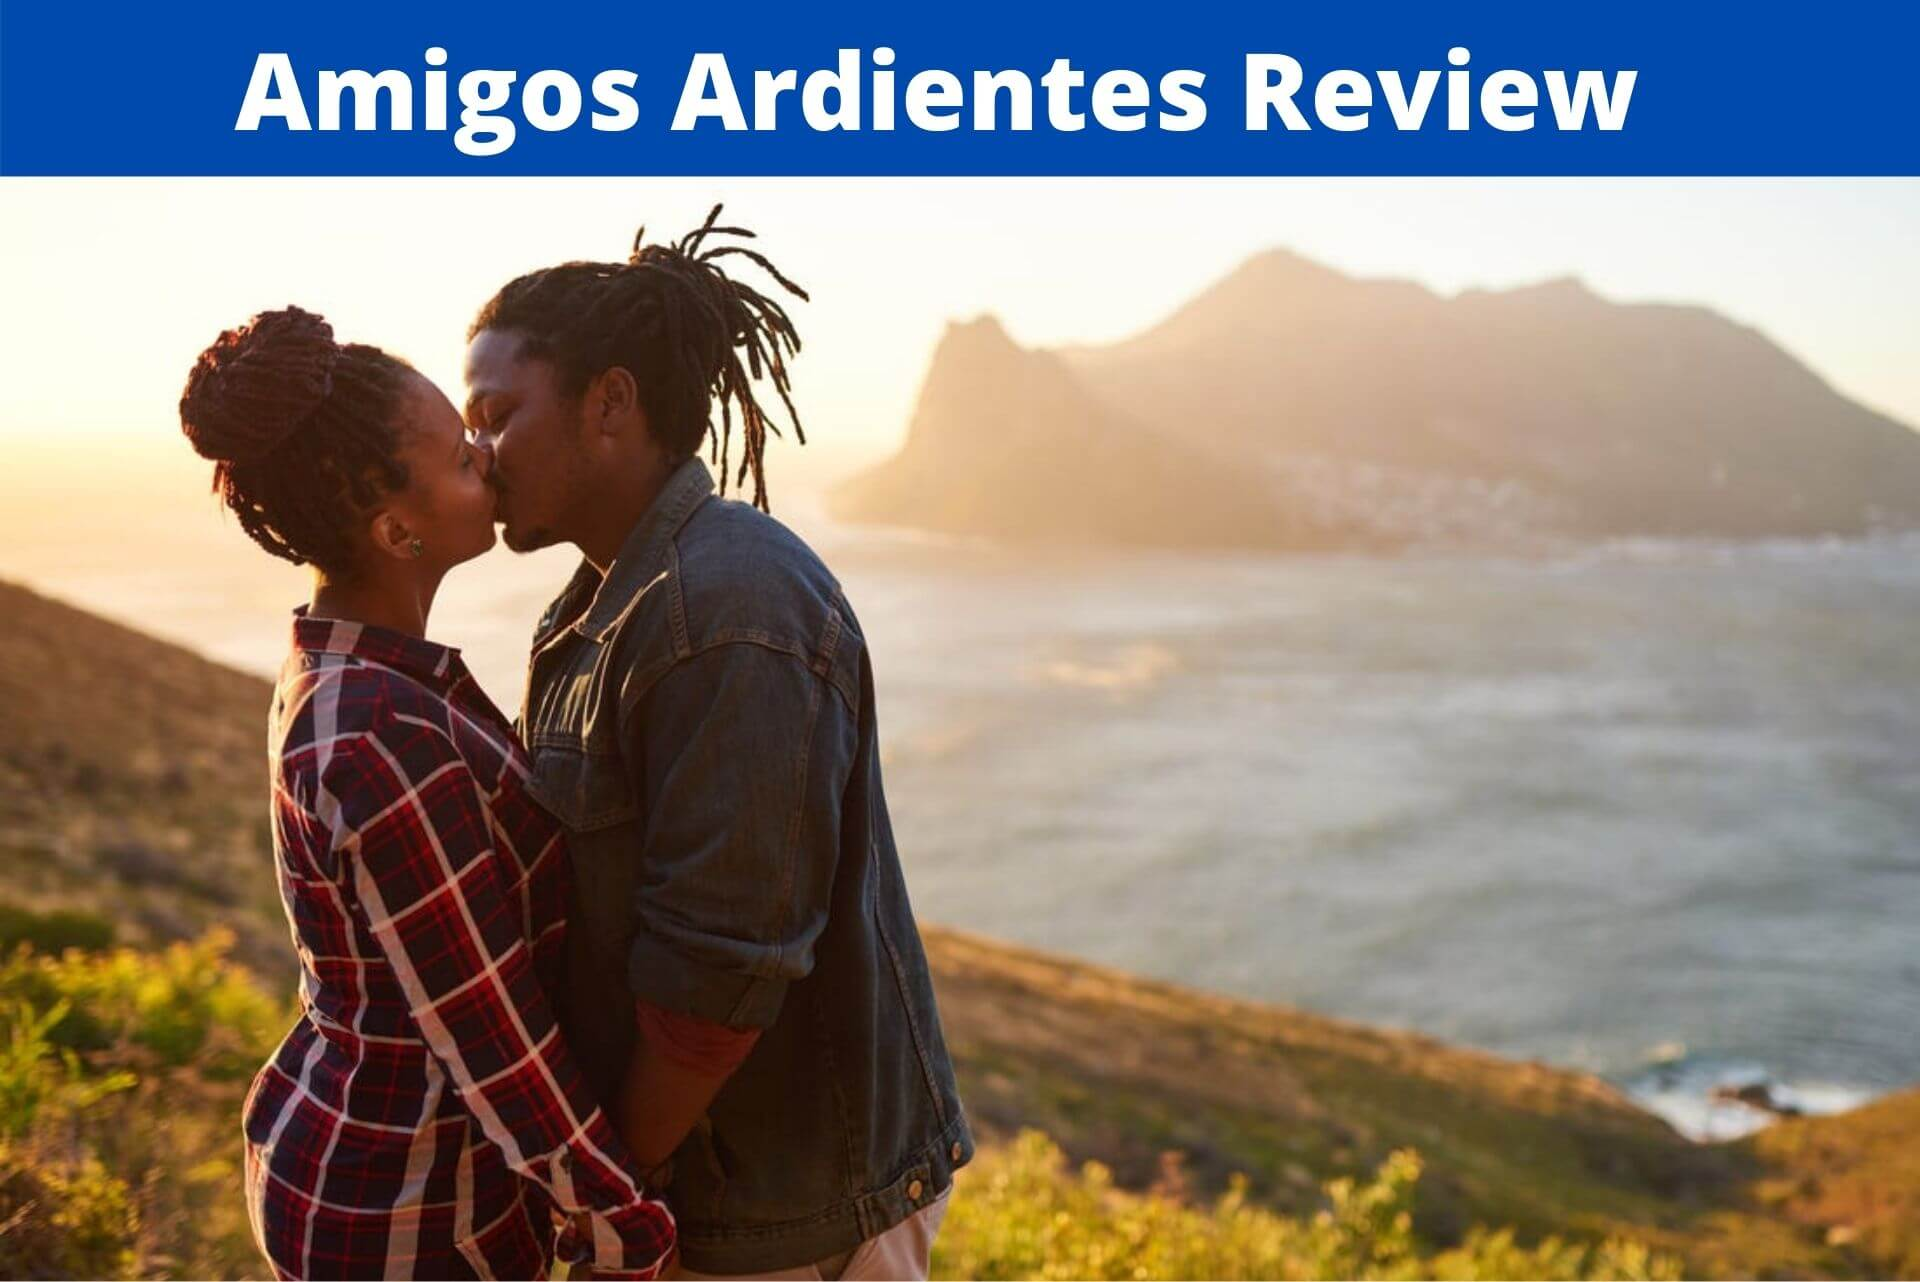 Amigos Ardientes Review